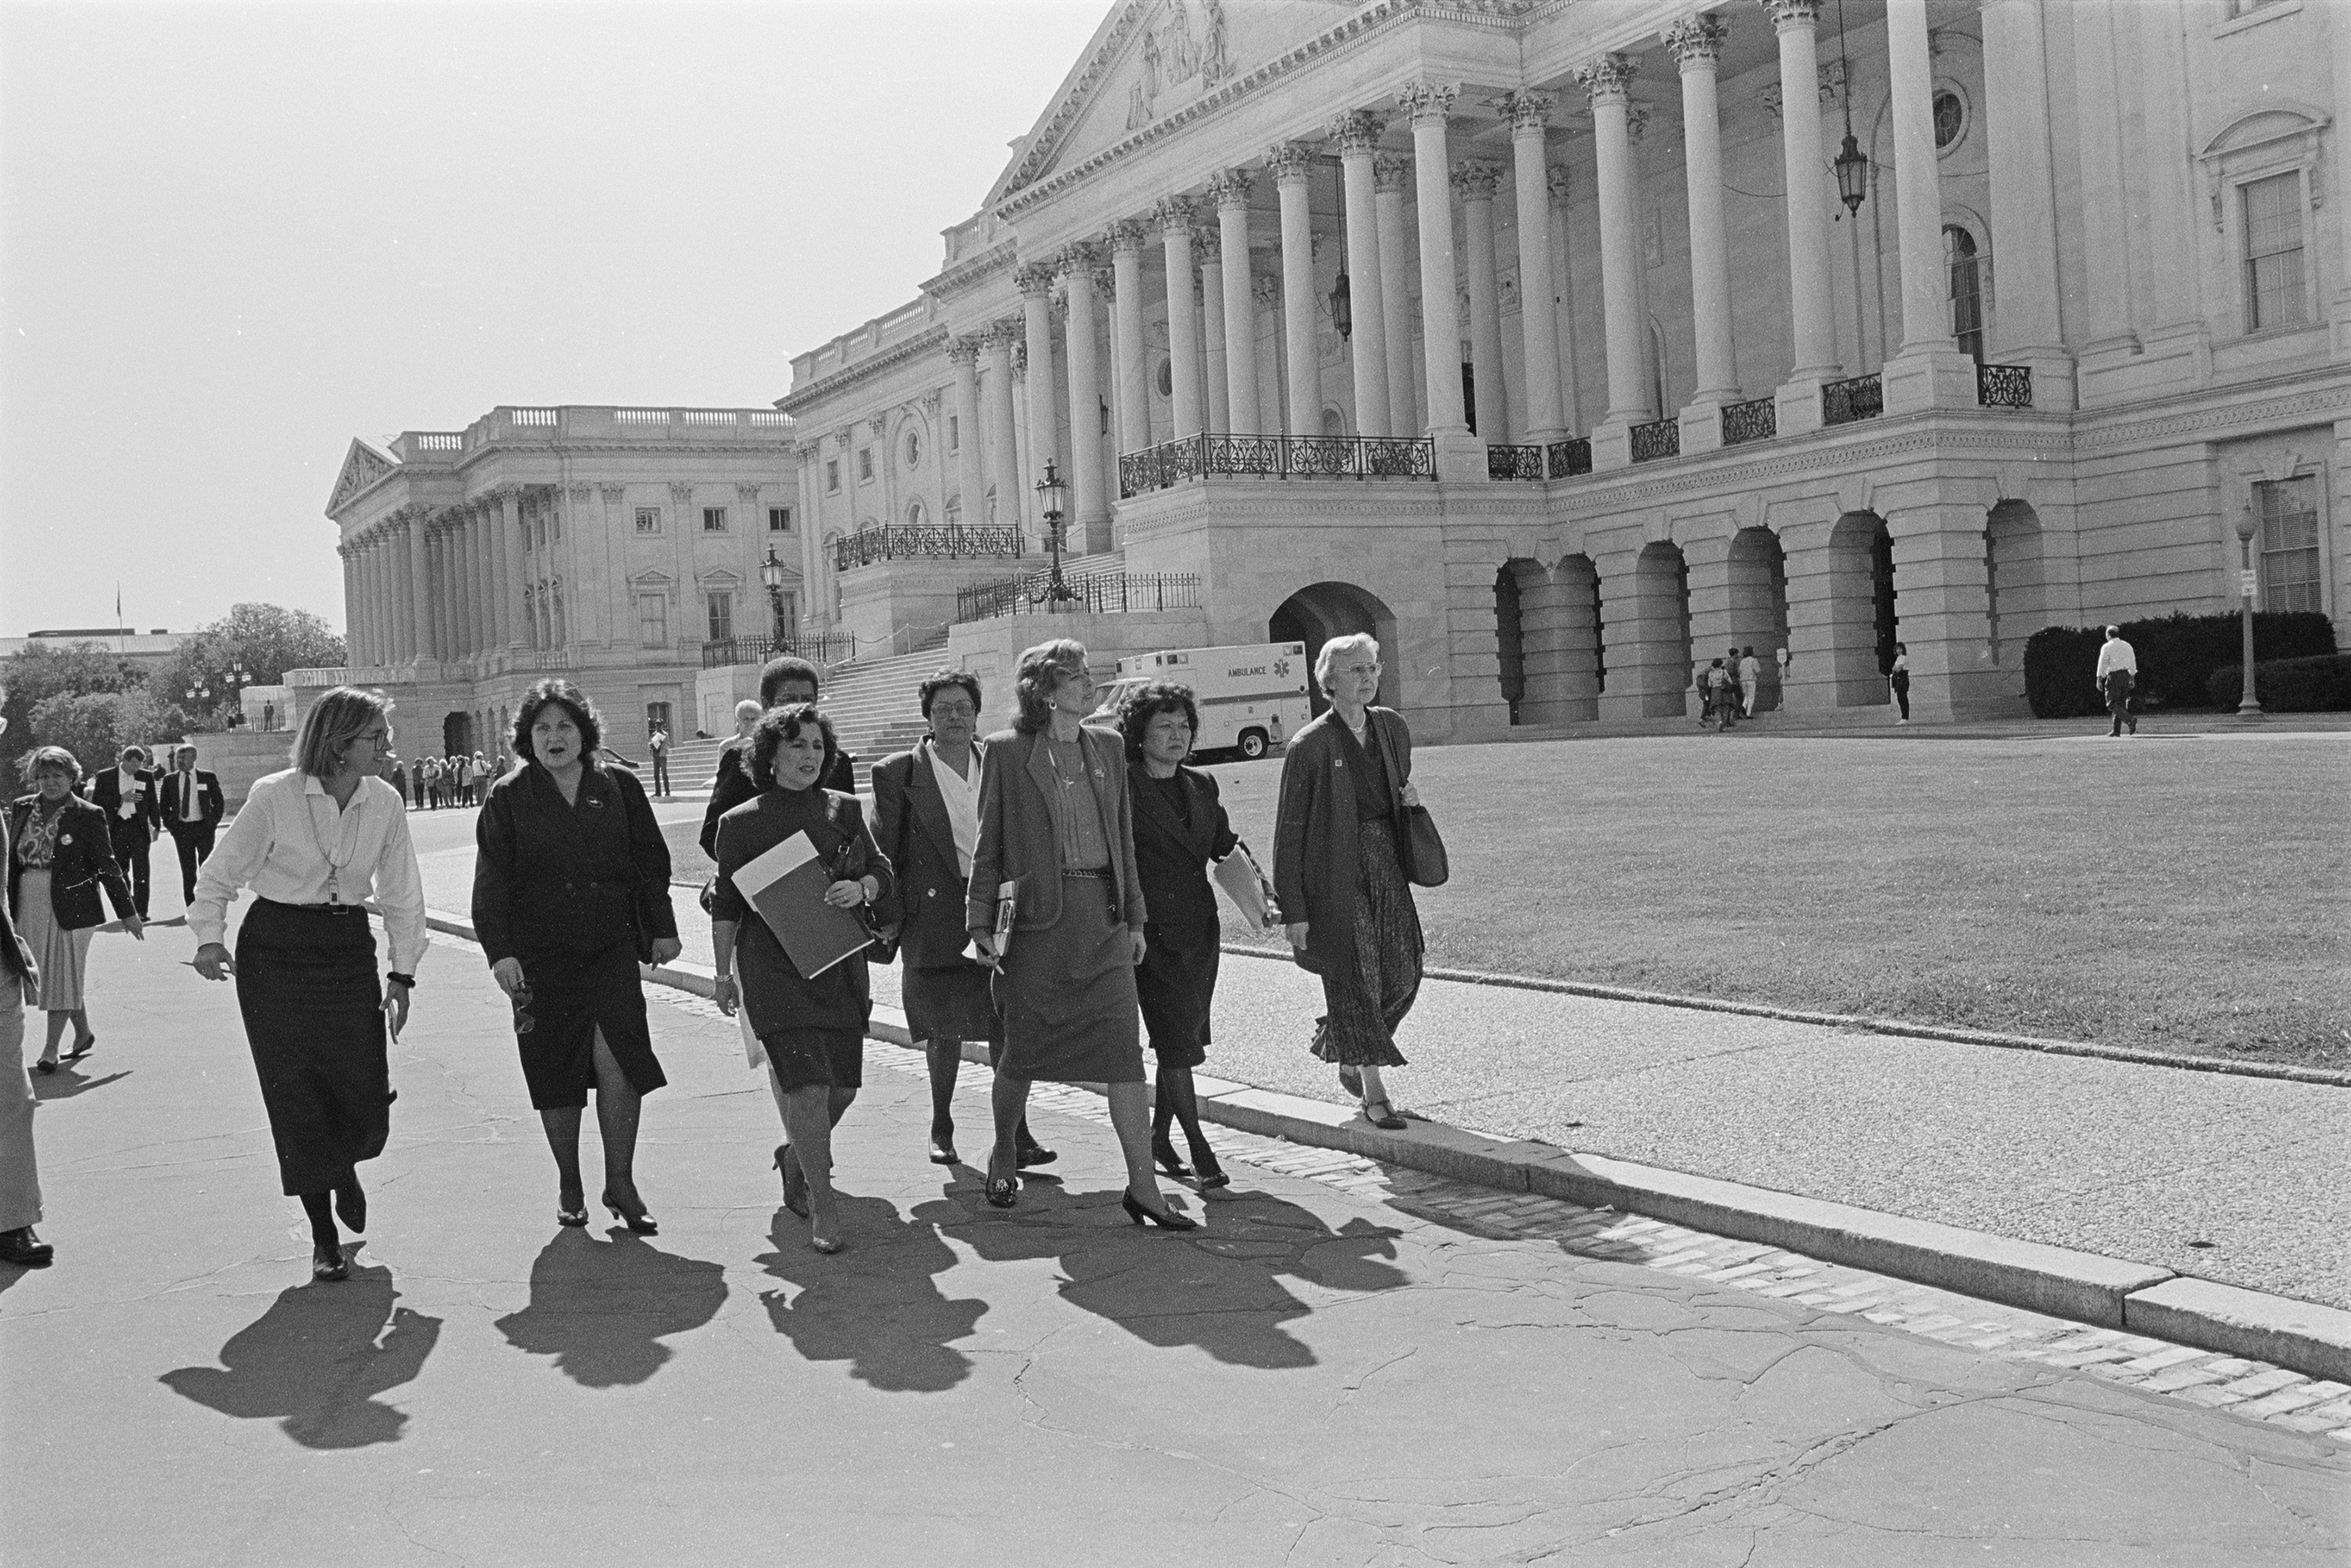 U.S. Representatives including Nita Lowey, Pat Schroeder, Patsy Mink, Jolene Unsoeld, Eleanor Holmes Norton and Ileana Ros-Lehtinen walking by the U.S. Capitol on their way to the Senate in 1991.